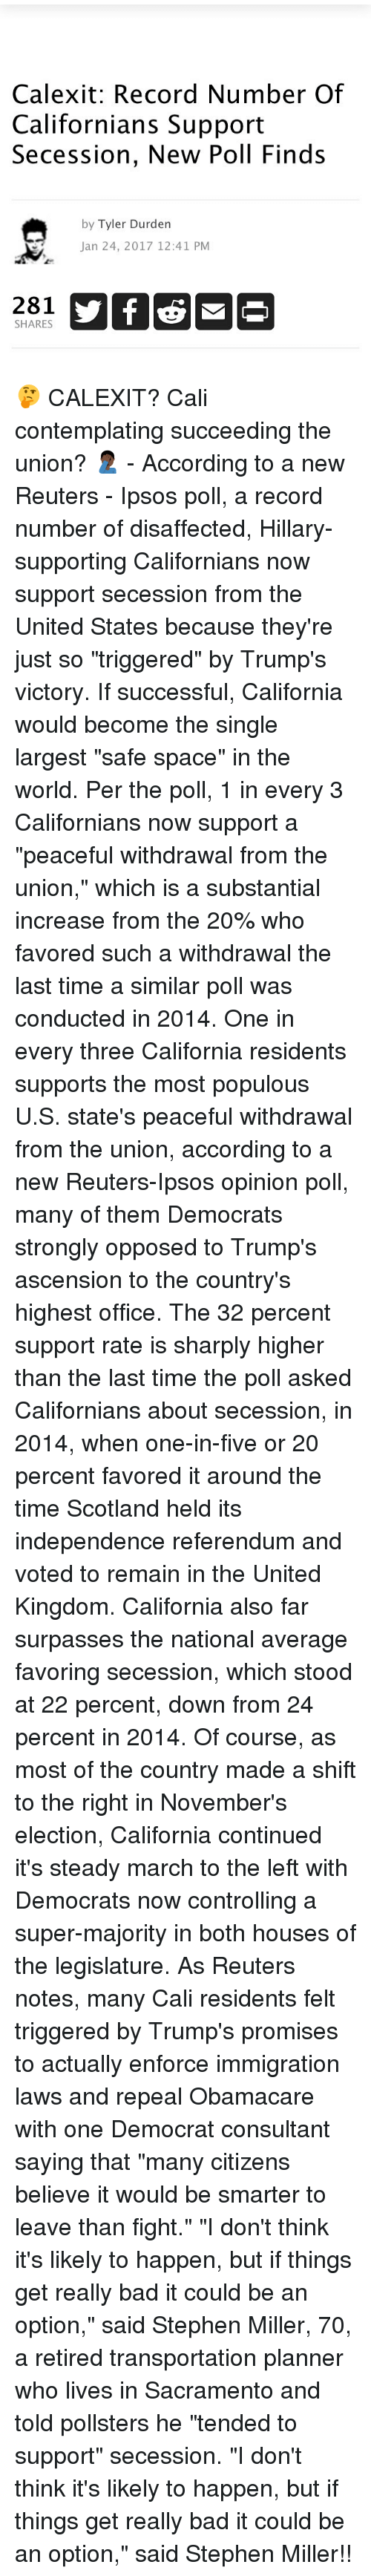 """Memes, Stephen, and Tyler Durden: Calexit: Record Number Of  Californians Support  Secession, New Poll Finds  by Tyler Durden  Jan 24, 2017 12:41 PM  281  SHARES 🤔 CALEXIT? Cali contemplating succeeding the union? 🤦🏿♂️ - According to a new Reuters - Ipsos poll, a record number of disaffected, Hillary-supporting Californians now support secession from the United States because they're just so """"triggered"""" by Trump's victory. If successful, California would become the single largest """"safe space"""" in the world. Per the poll, 1 in every 3 Californians now support a """"peaceful withdrawal from the union,"""" which is a substantial increase from the 20% who favored such a withdrawal the last time a similar poll was conducted in 2014. One in every three California residents supports the most populous U.S. state's peaceful withdrawal from the union, according to a new Reuters-Ipsos opinion poll, many of them Democrats strongly opposed to Trump's ascension to the country's highest office. The 32 percent support rate is sharply higher than the last time the poll asked Californians about secession, in 2014, when one-in-five or 20 percent favored it around the time Scotland held its independence referendum and voted to remain in the United Kingdom. California also far surpasses the national average favoring secession, which stood at 22 percent, down from 24 percent in 2014. Of course, as most of the country made a shift to the right in November's election, California continued it's steady march to the left with Democrats now controlling a super-majority in both houses of the legislature. As Reuters notes, many Cali residents felt triggered by Trump's promises to actually enforce immigration laws and repeal Obamacare with one Democrat consultant saying that """"many citizens believe it would be smarter to leave than fight."""" """"I don't think it's likely to happen, but if things get really bad it could be an option,"""" said Stephen Miller, 70, a retired transportation planner who lives in Sacra"""